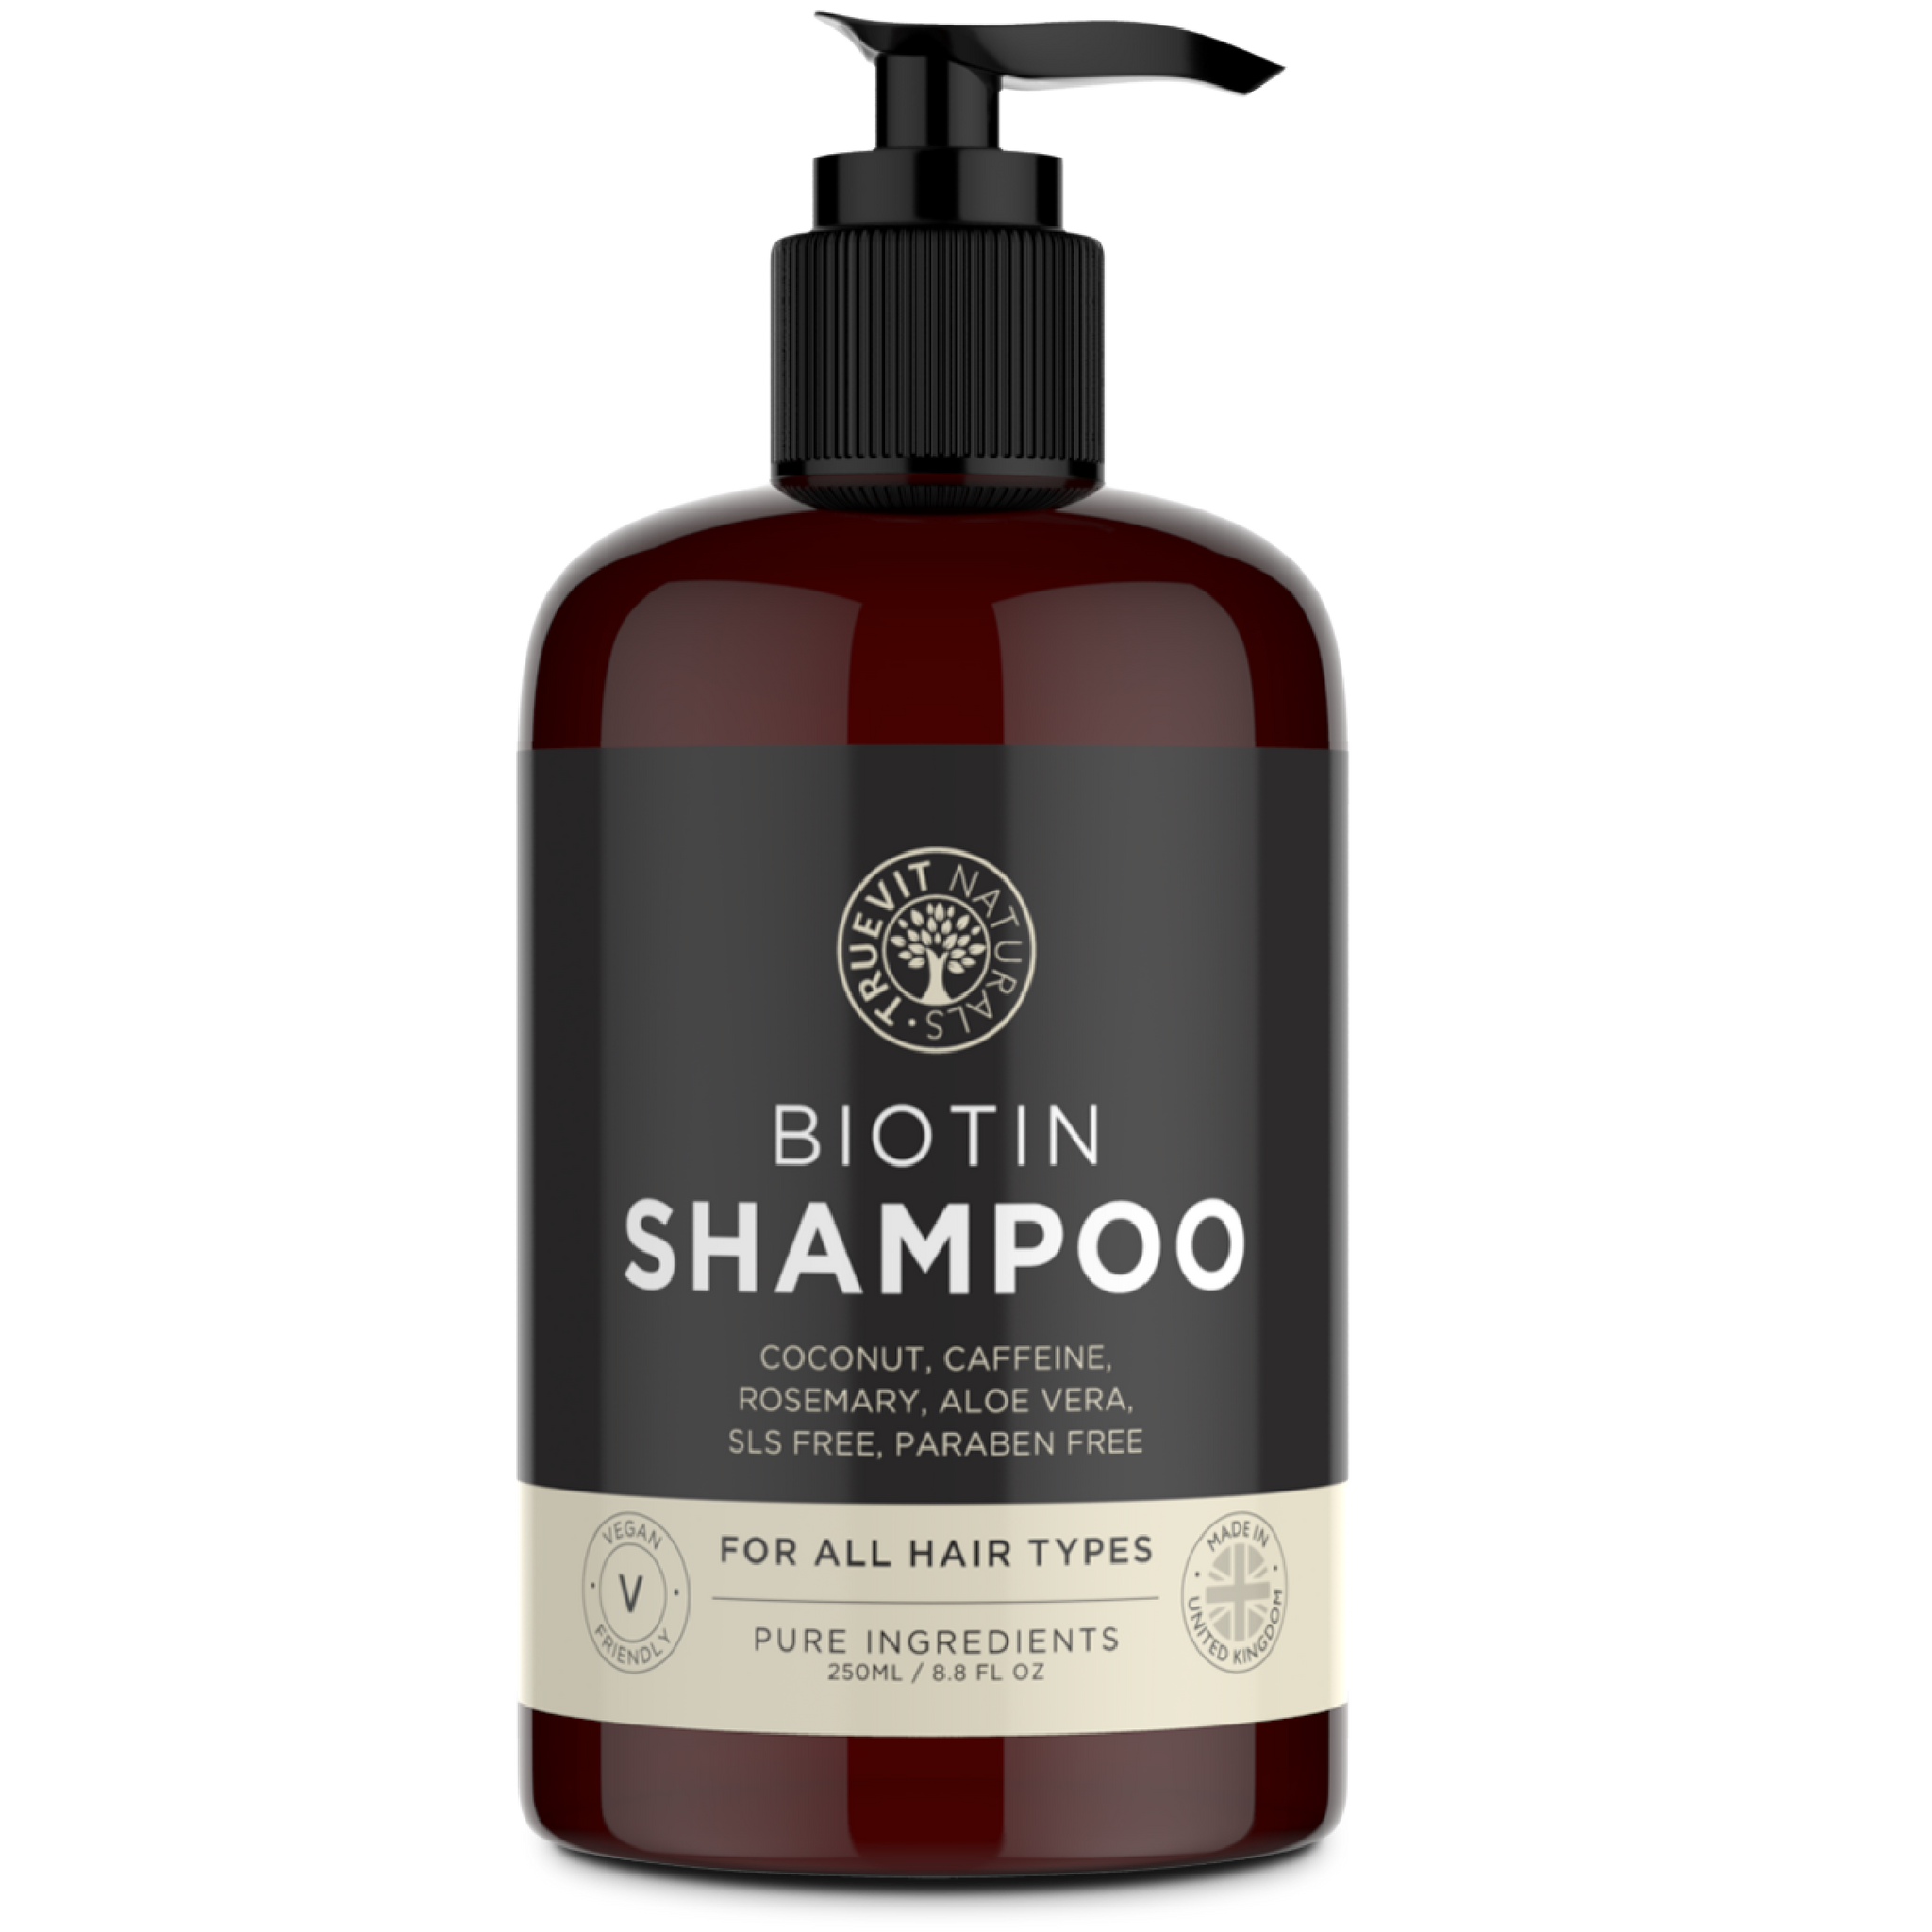 Biotin Shampoo with Coconut Oil, Rosemary and Aloe Vera - 250ml